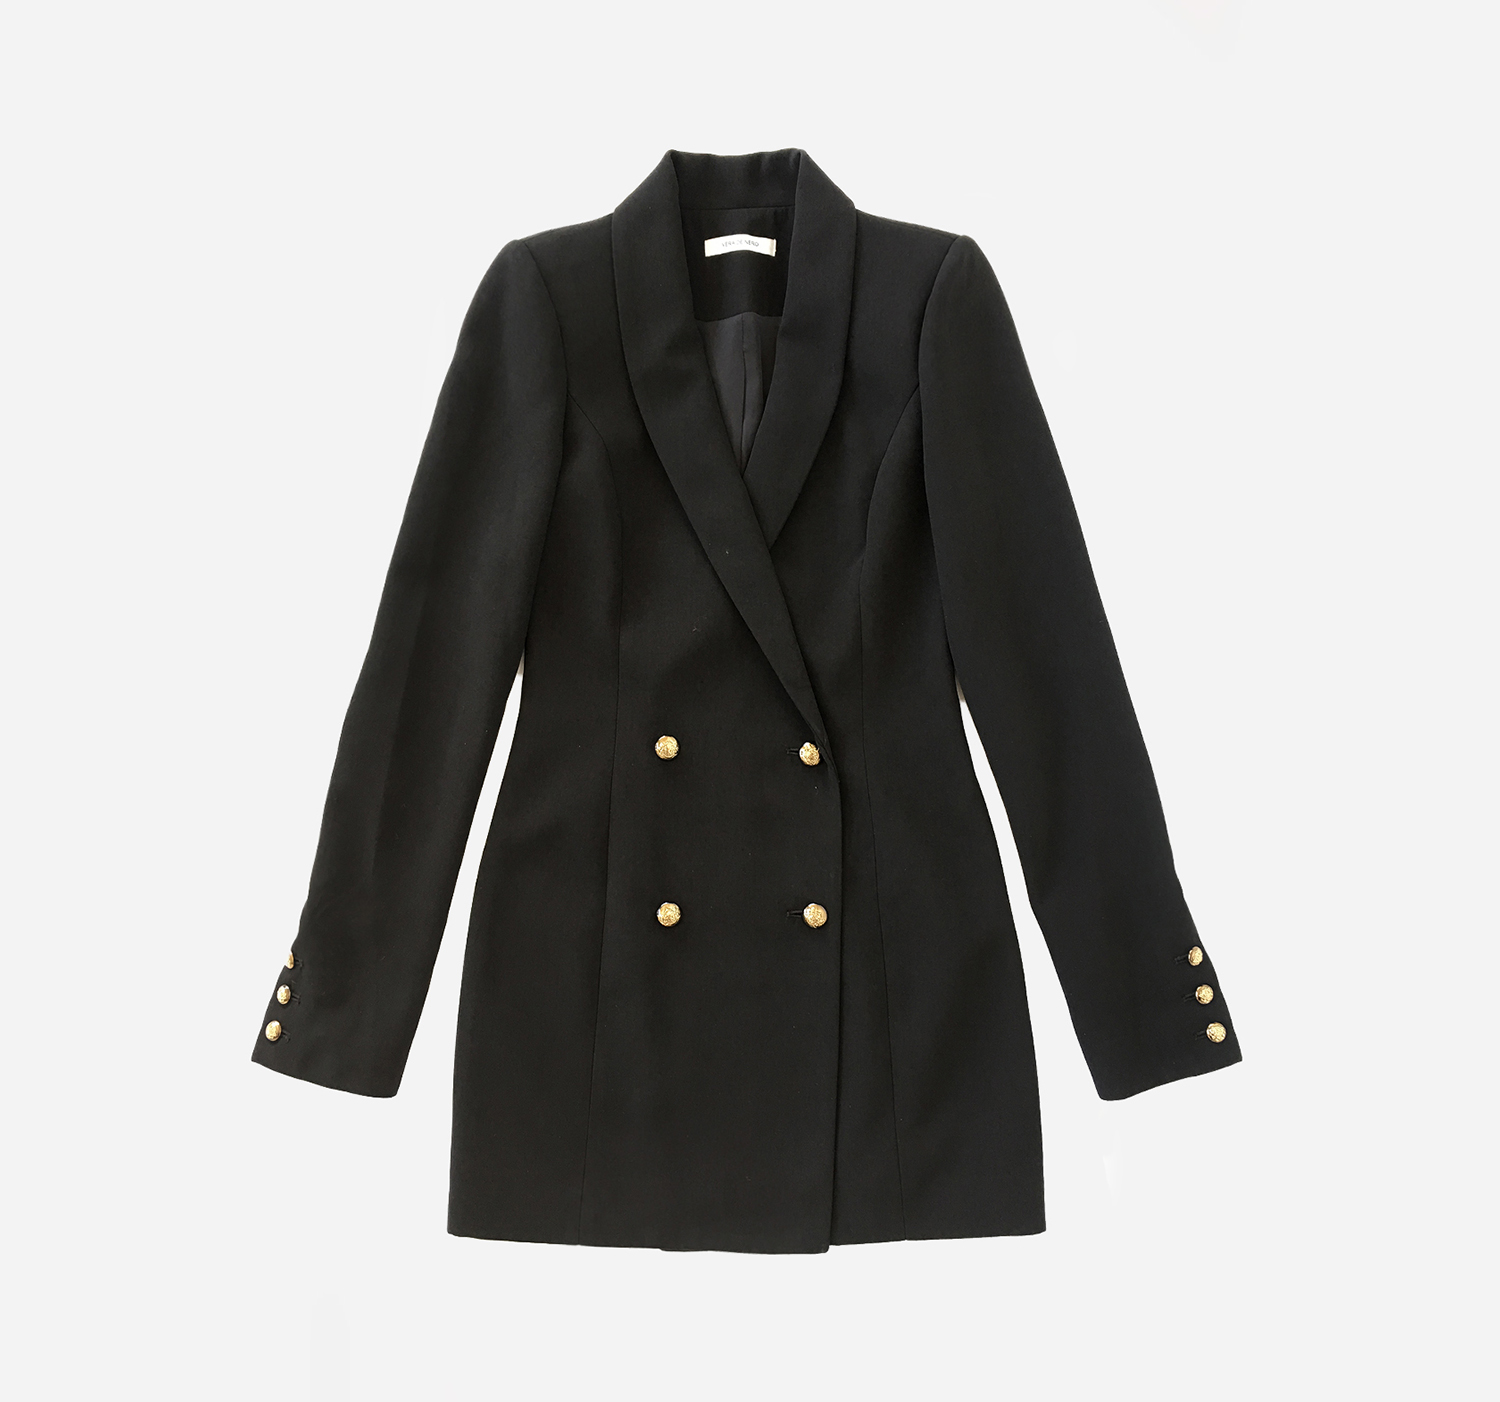 Blazer Dress - VERA DE NERO's blazer dress is a staple item for your wardrobe this season.